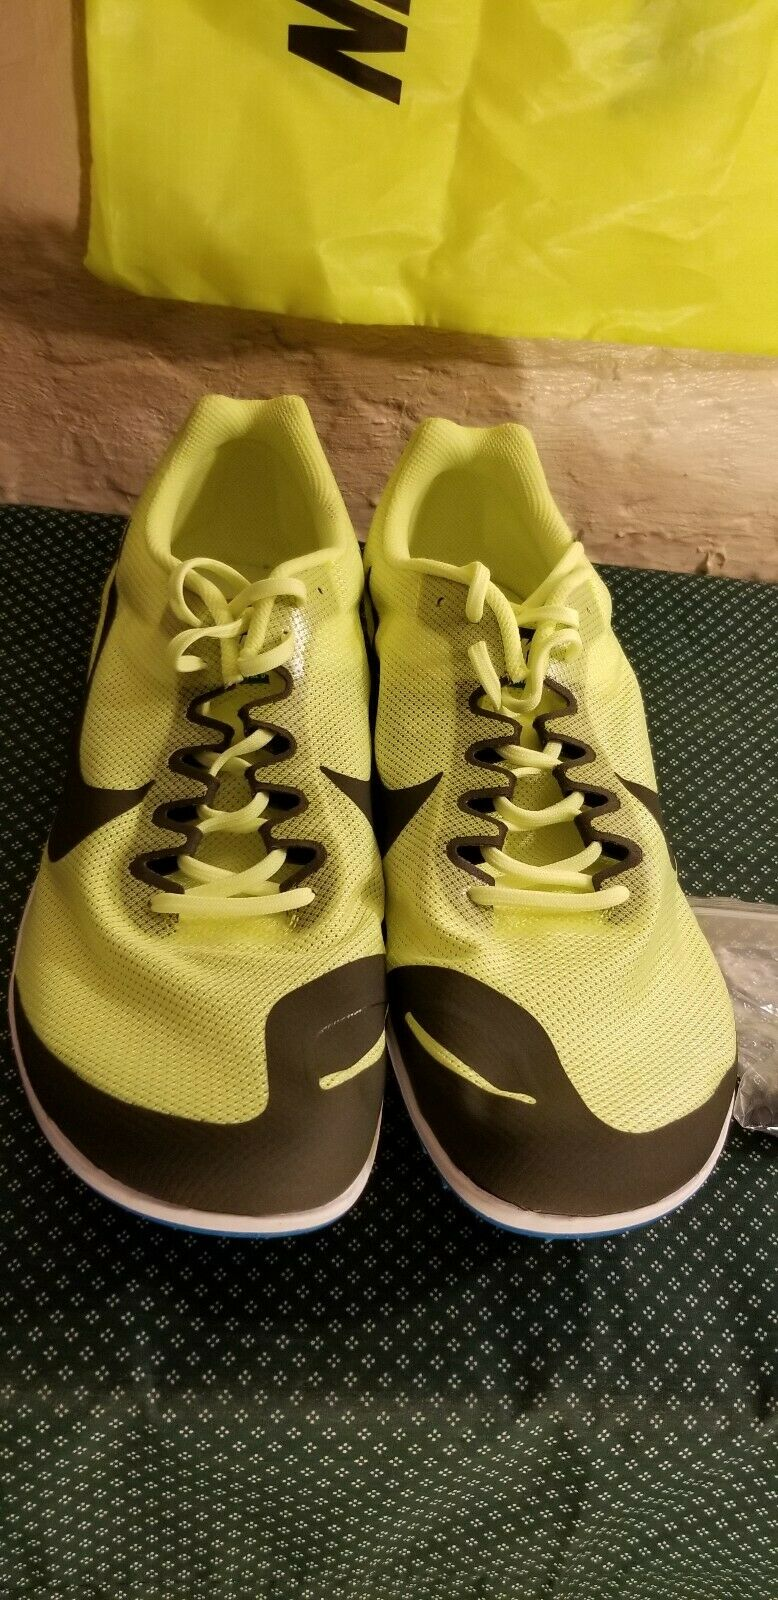 Nike Zoom Rival D 10 Track Distance Spikes shoes Bag 907566-703 Mens Sz 14 New